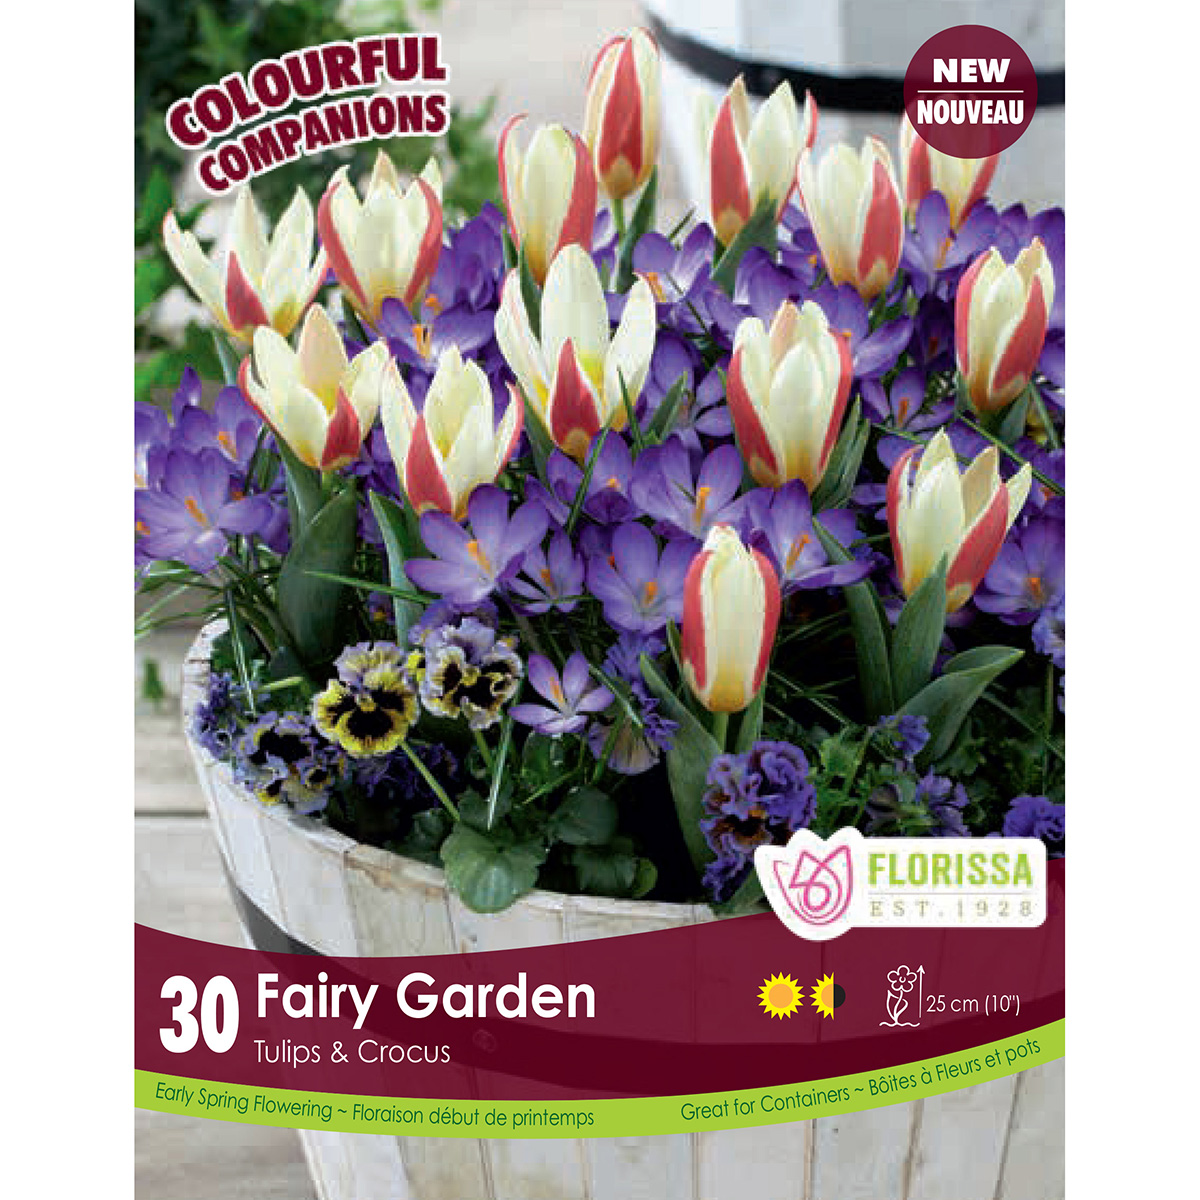 Colourful Companions 'Fairy Garden' Bulbs